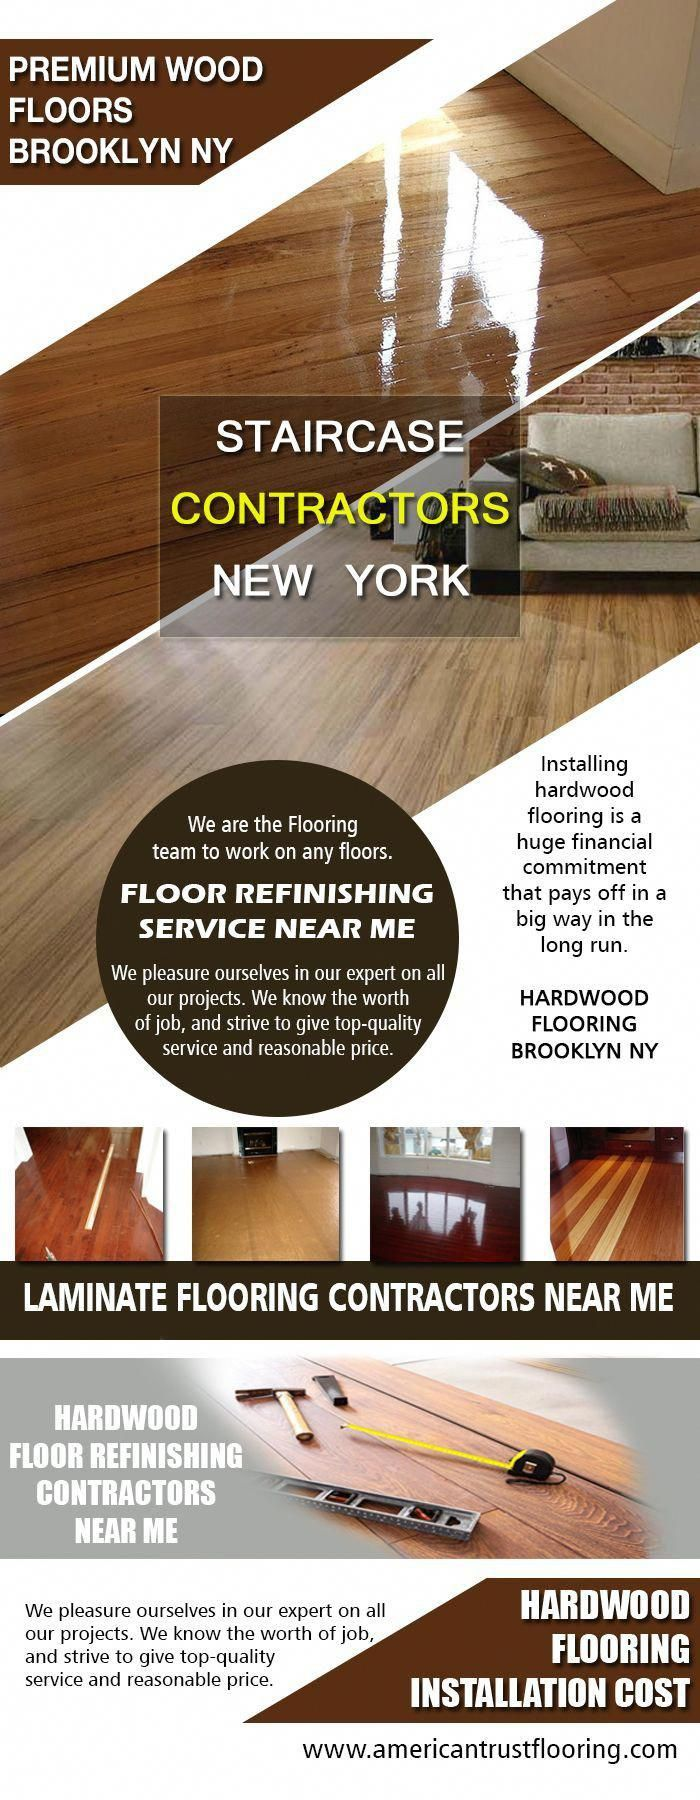 Hardwood Floor Borders Hardwoodfloorpolish Post 8086460016 Refinishing Floors Hardwood Installation Wood Flooring Company